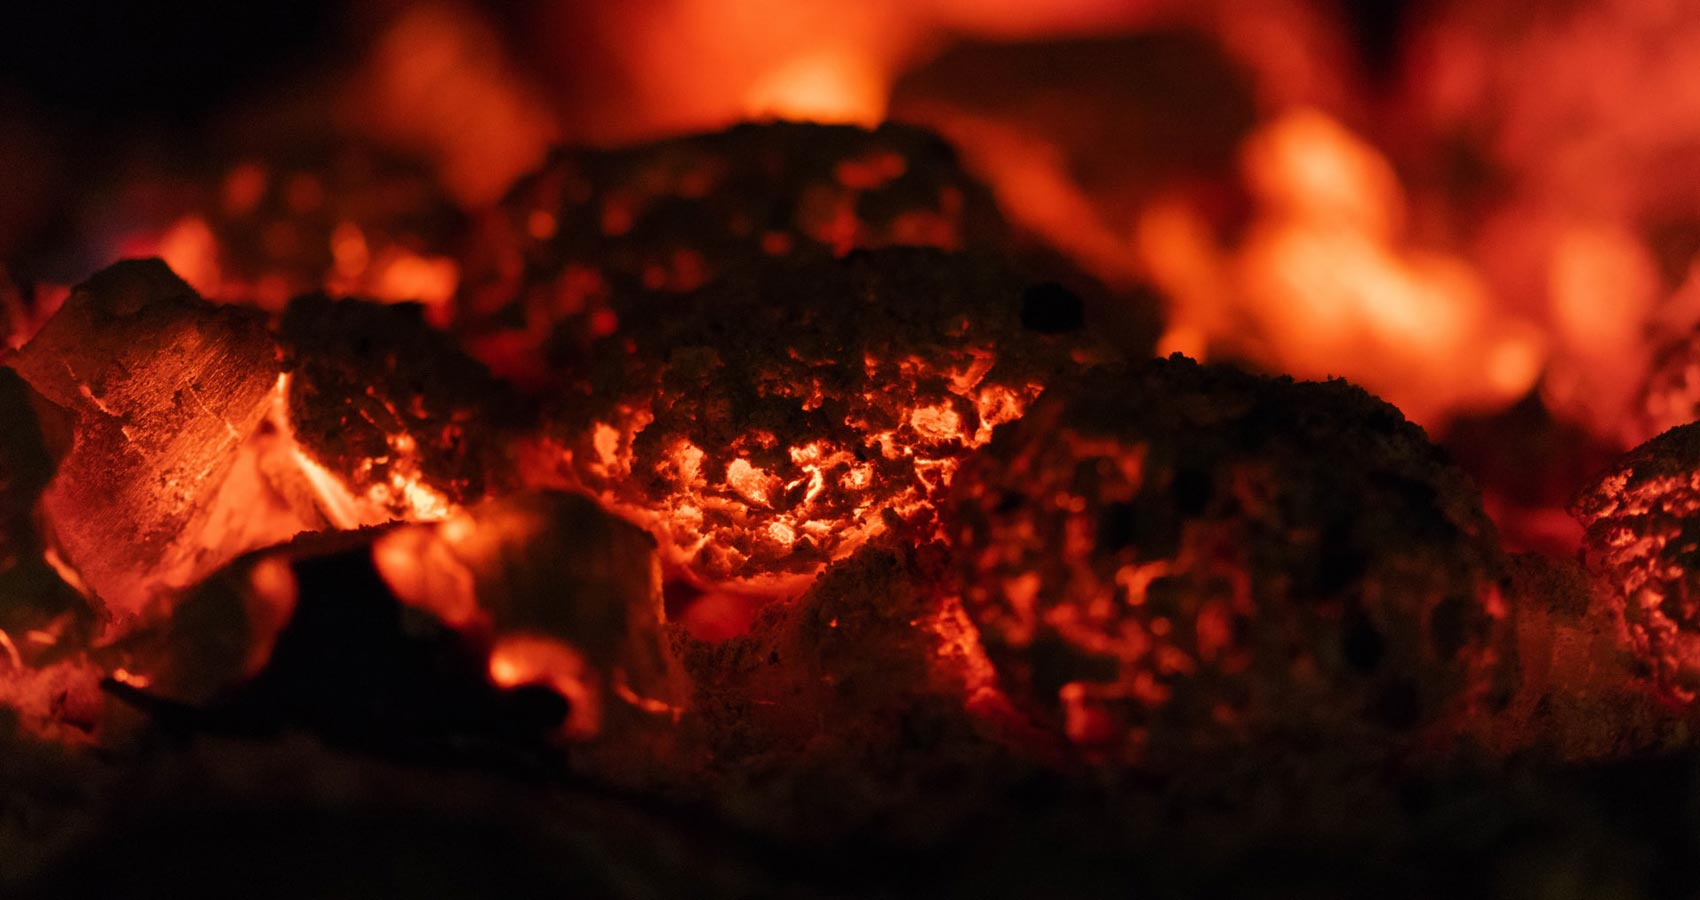 Embers of My Dream, micropoetry by Tapeshwar Yadav at Spillwords.com